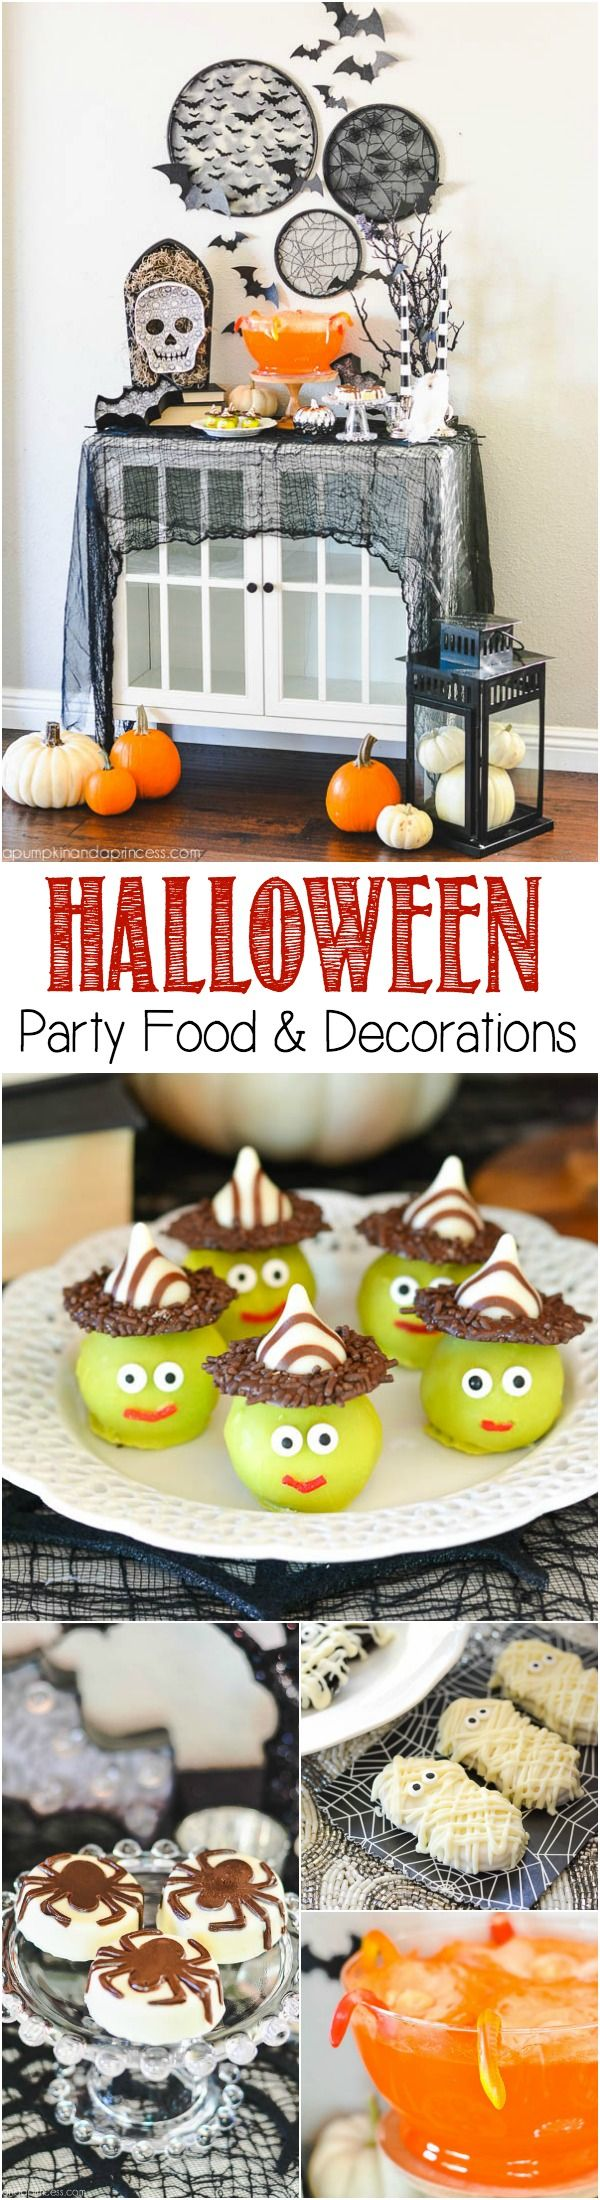 Best 623 Holidays - Halloween images on Pinterest | Holidays and ...